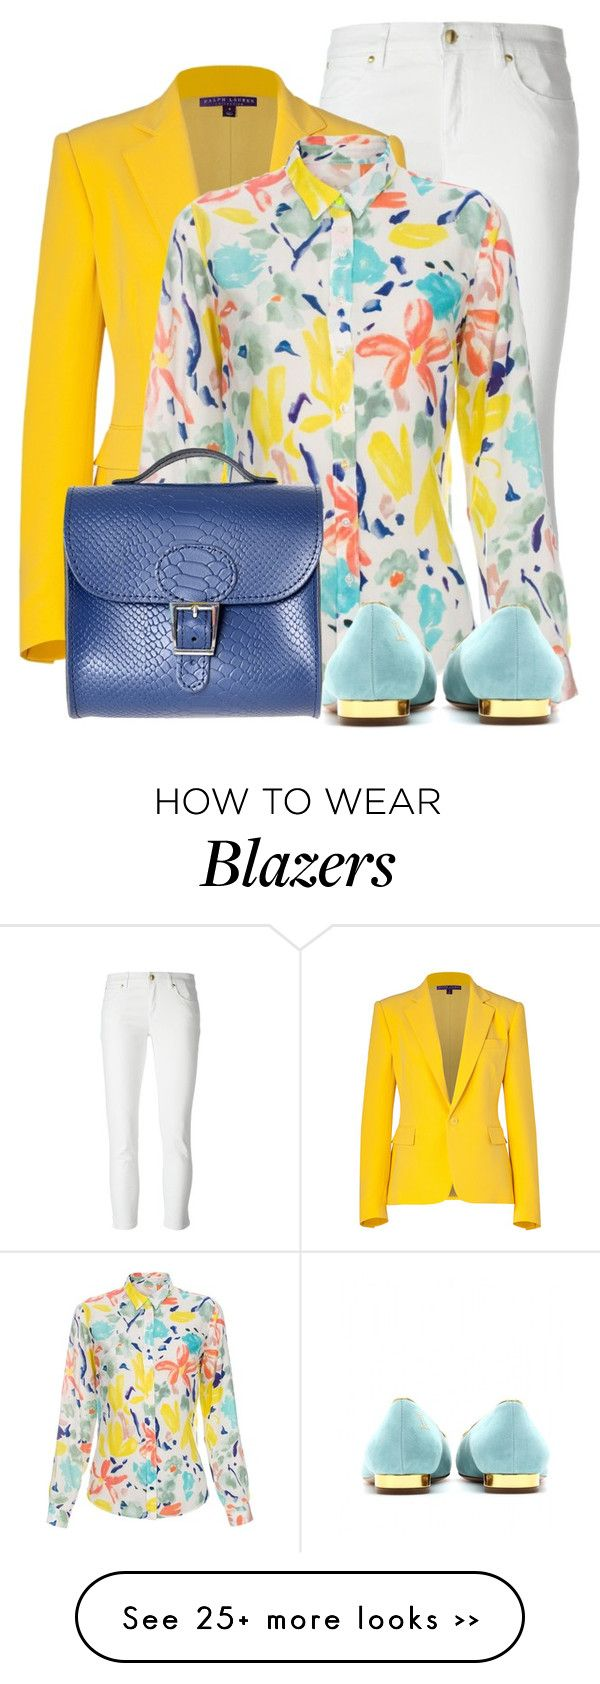 """Untitled #345"" by jrbaker61 on Polyvore"